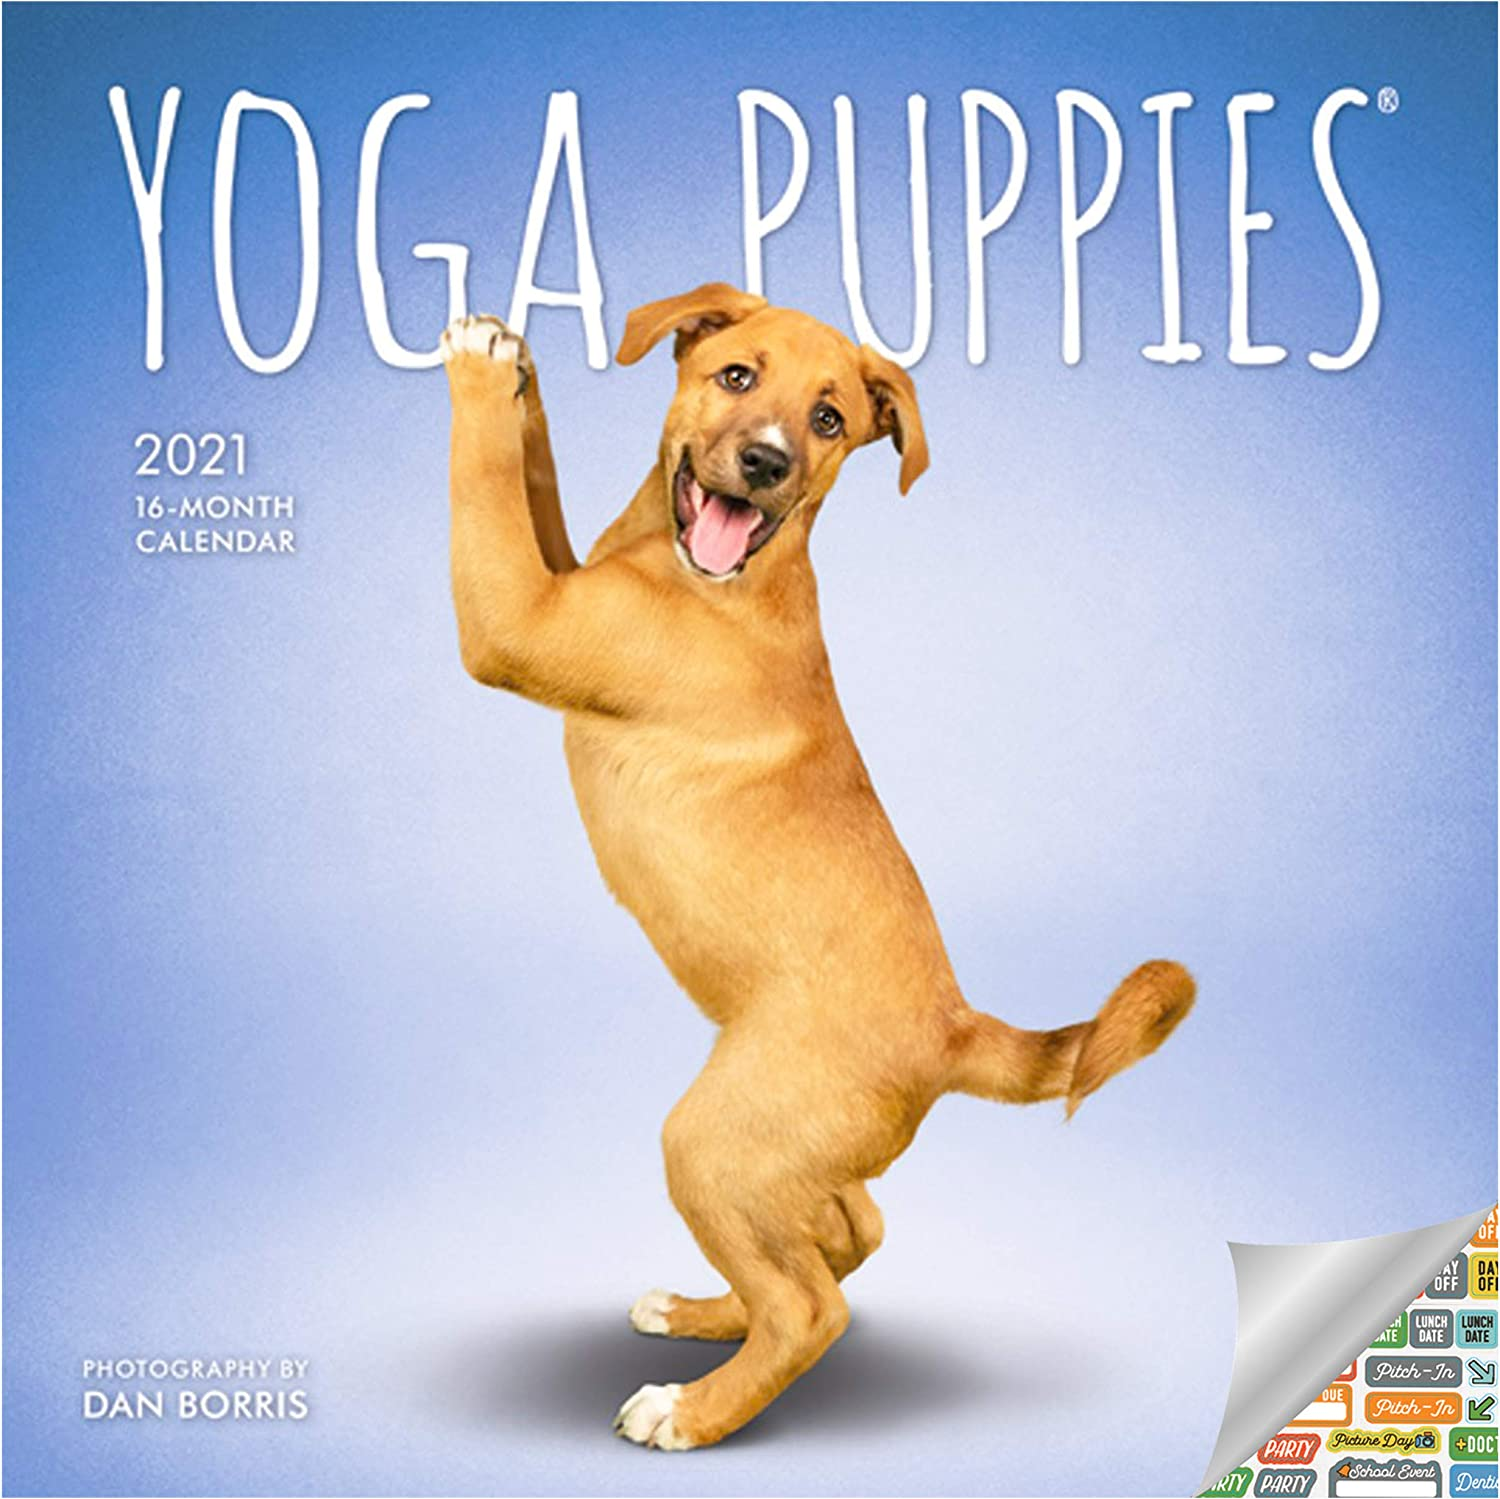 Yoga Puppies Calendar 2021 Bundle - Deluxe 2021 Yoga Puppies Mini Calendar with Over 100 Calendar Stickers (Puppies Gifts, Office Supplies)